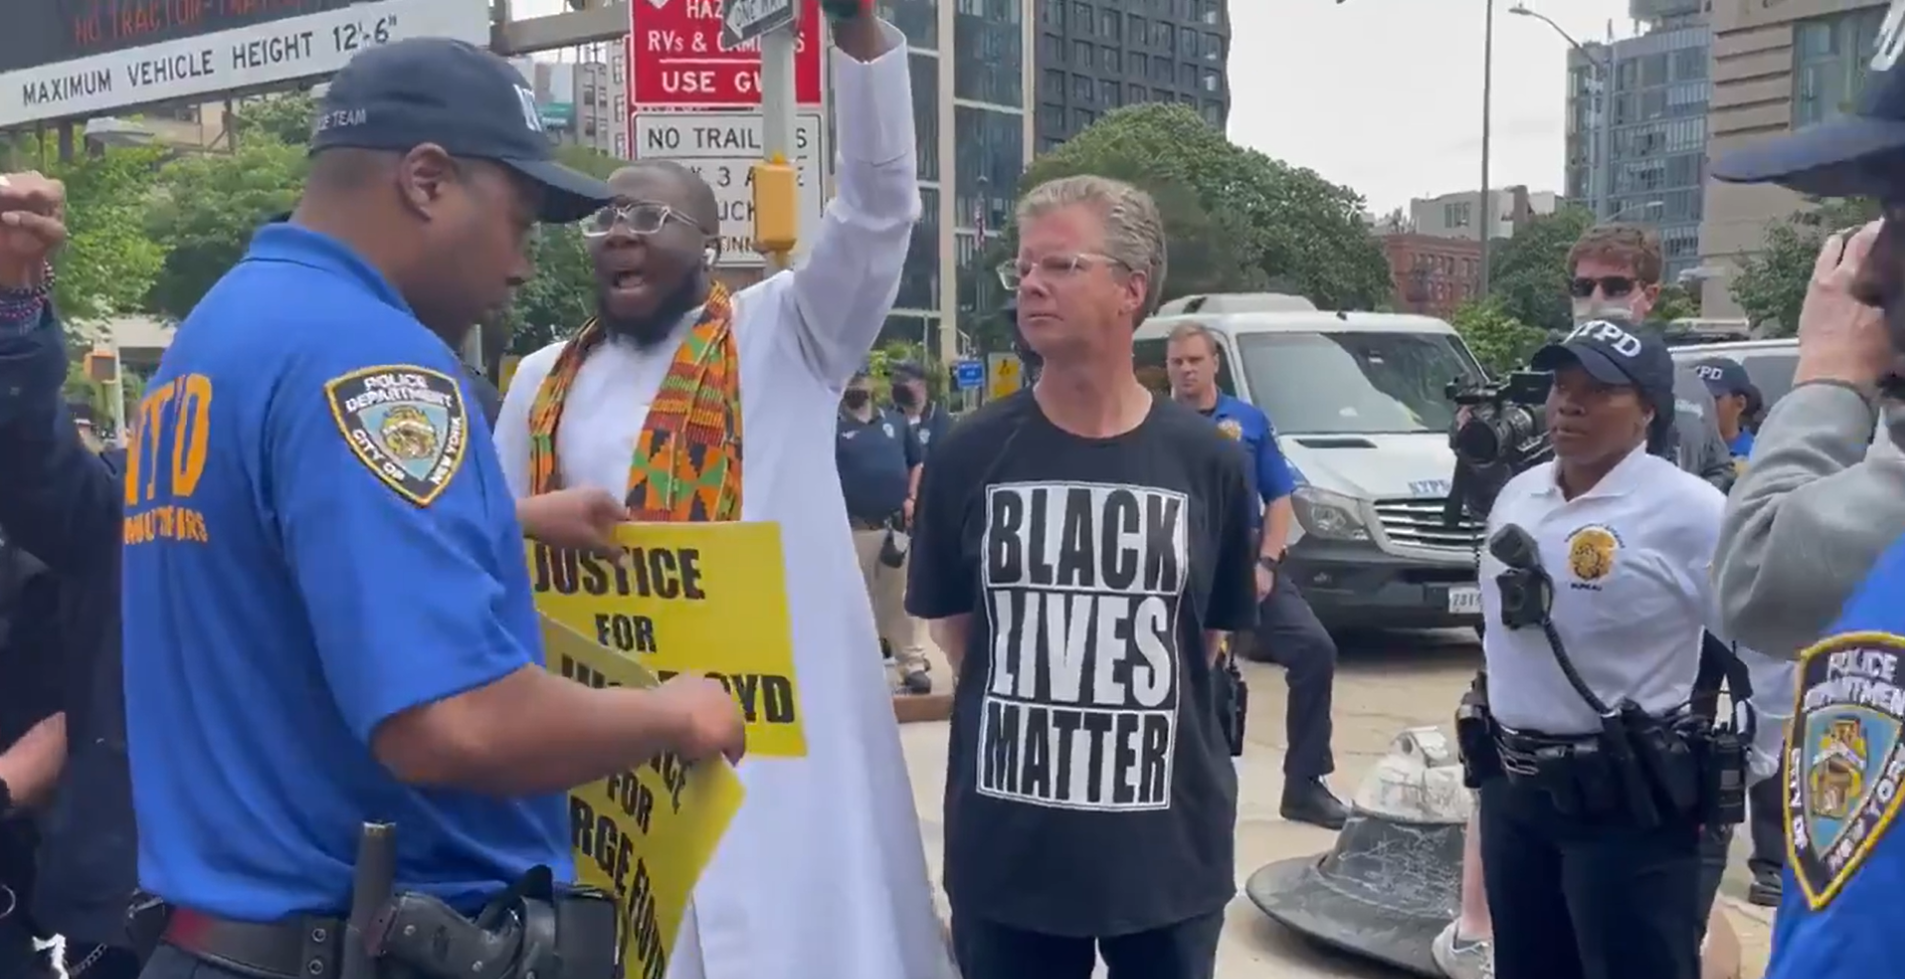 BLM activists and mayoral candidate Shaun Donovan arrested